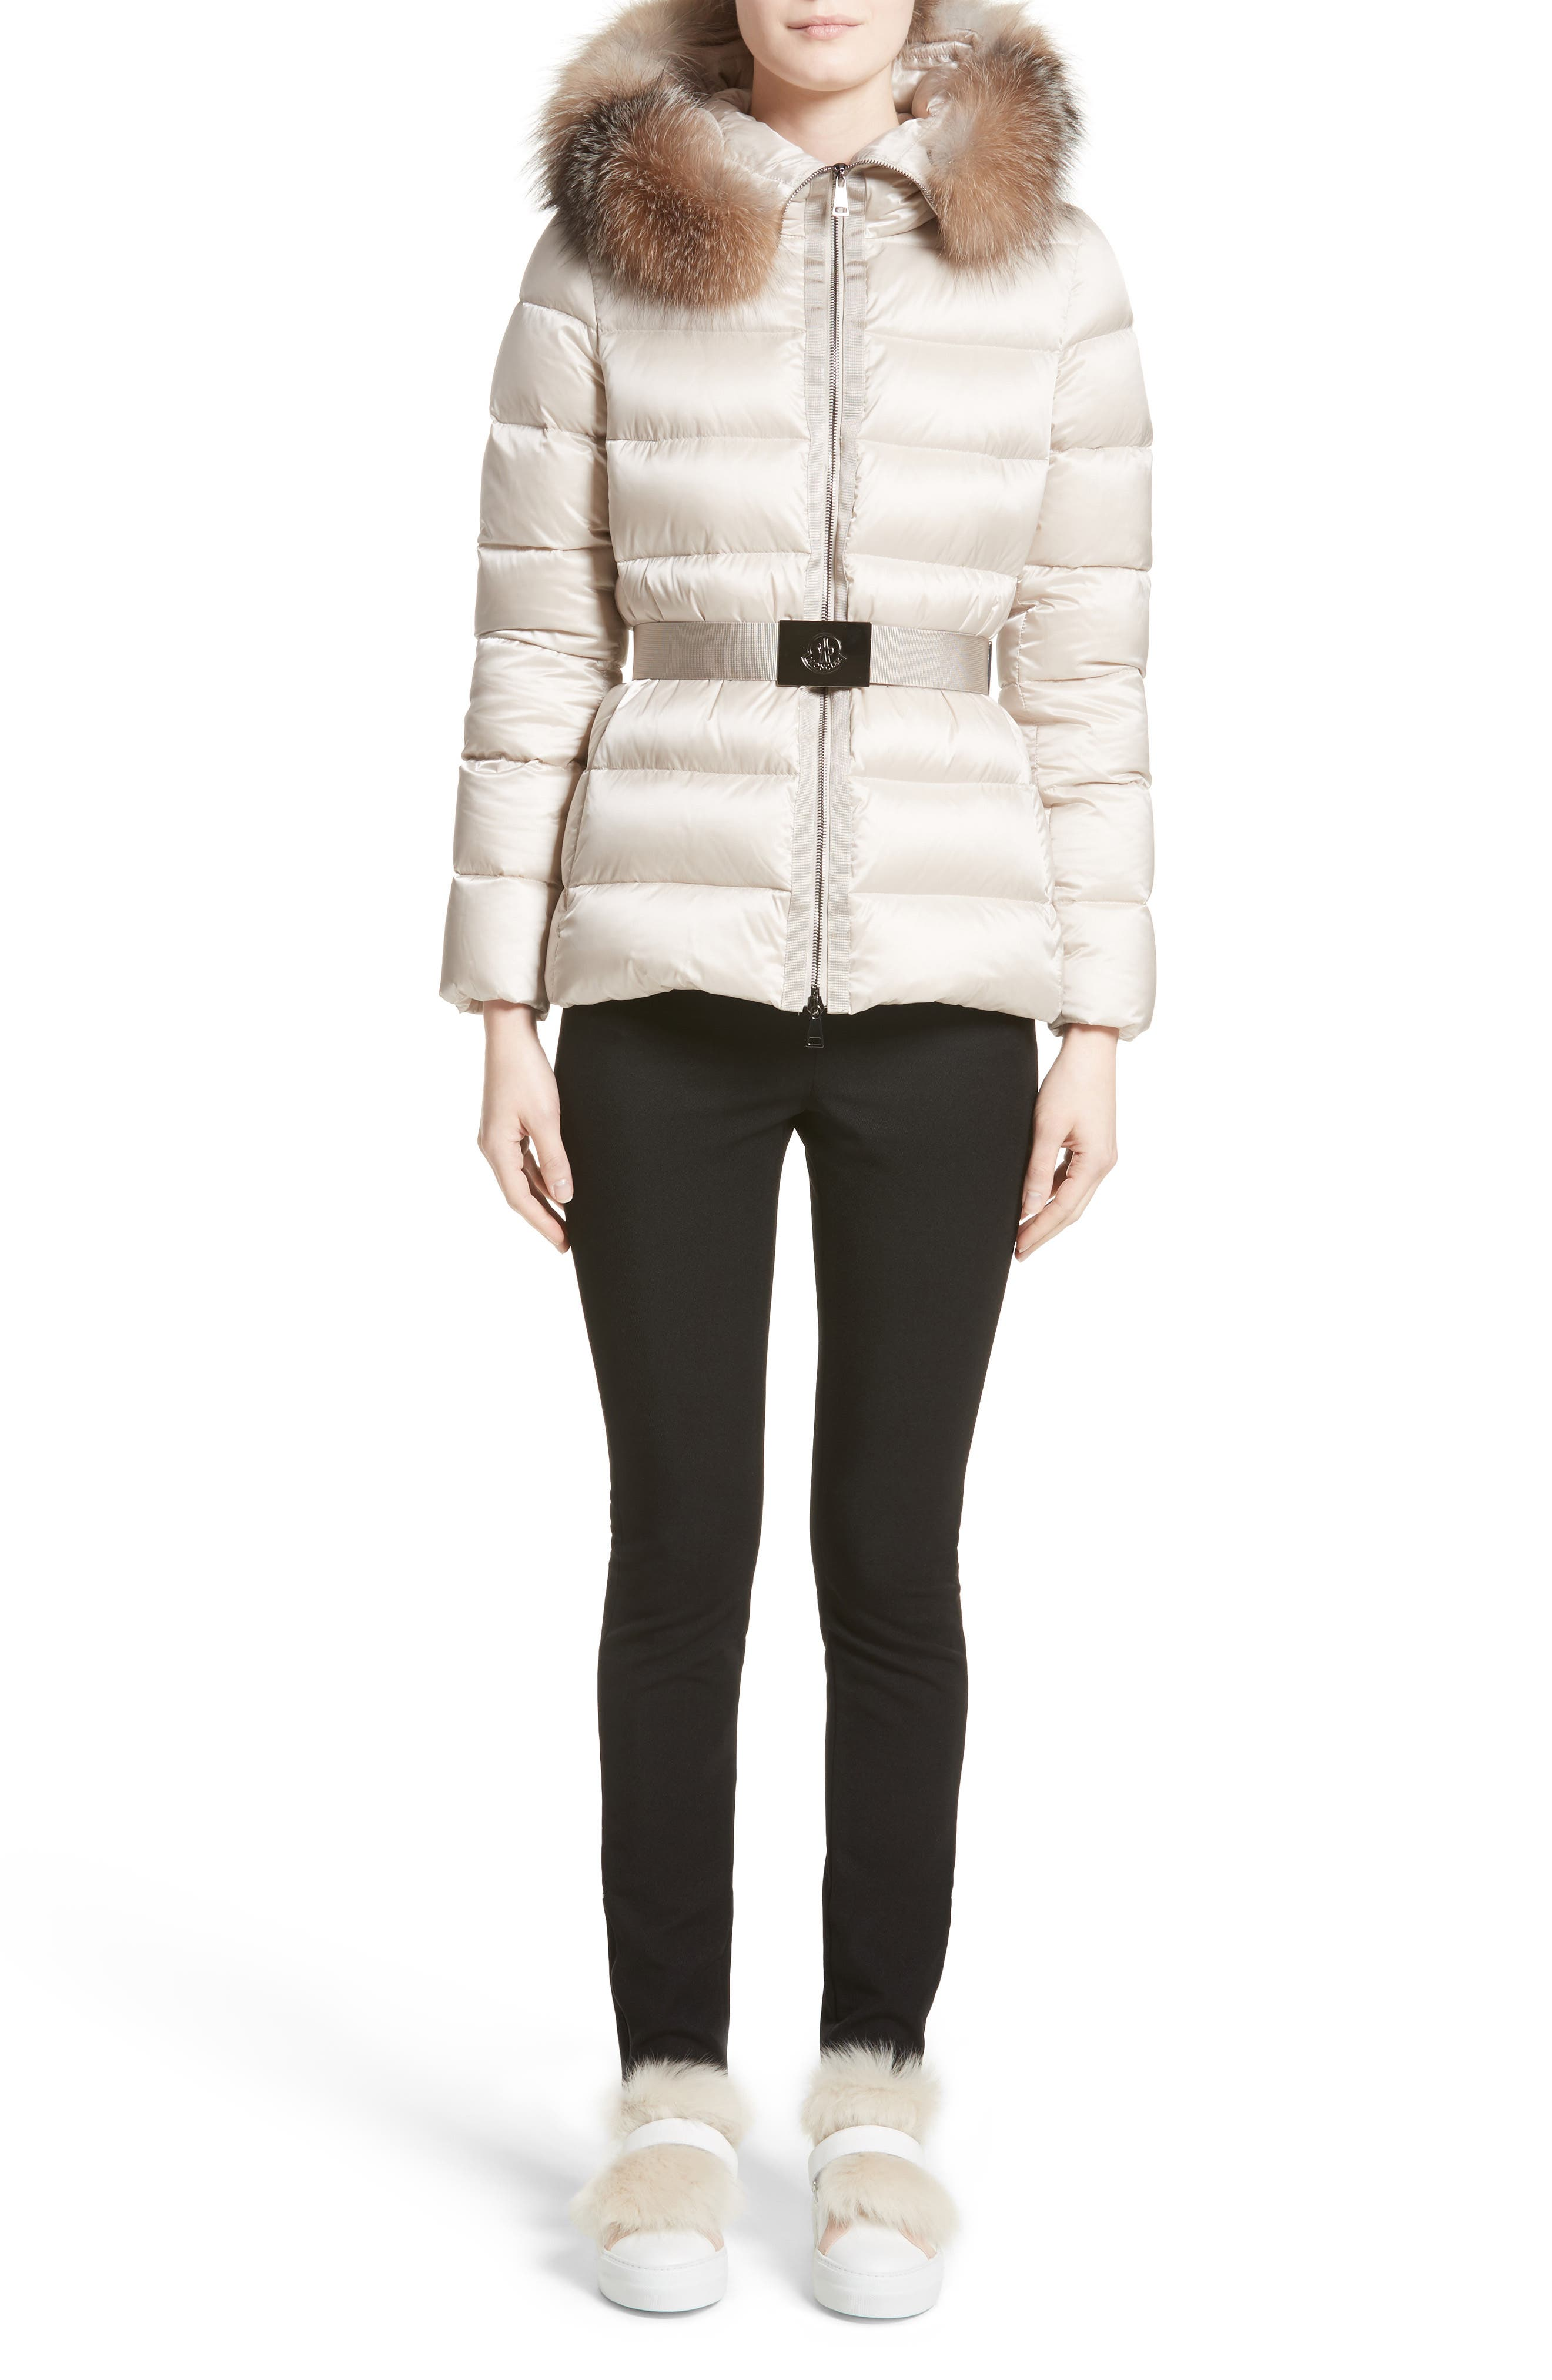 Tatie Belted Down Puffer Coat with Removable Genuine Fox Fur Trim,                             Alternate thumbnail 7, color,                             CHAMPAGNE